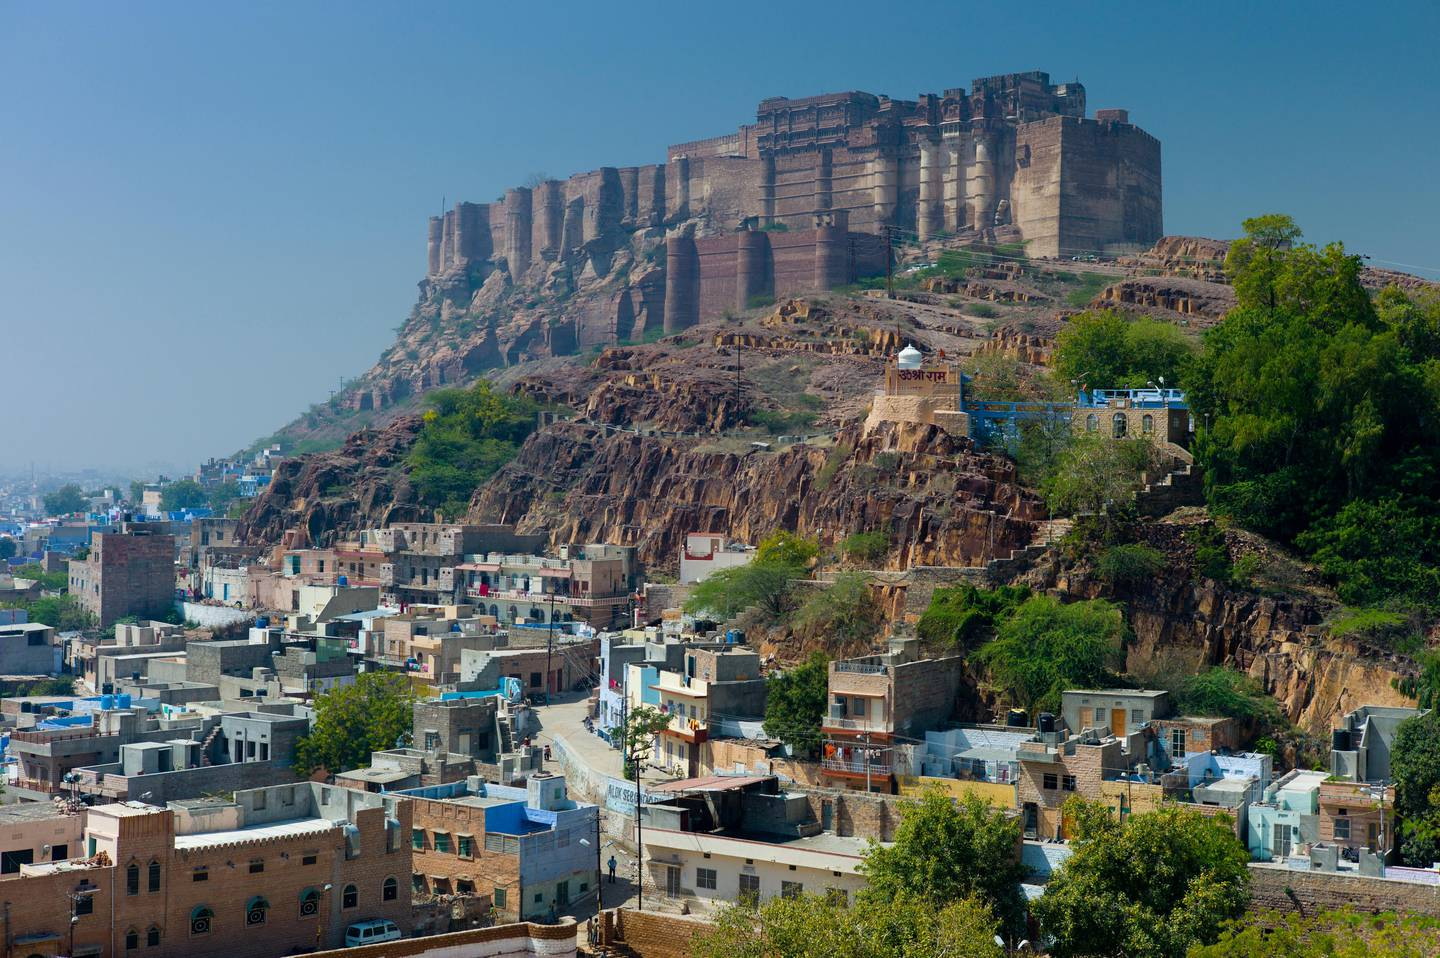 Mehrangarh Fort, Citadel of the Sun, and the Blue City of Jodhpur in Rajasthan, Northern India. Getty Images